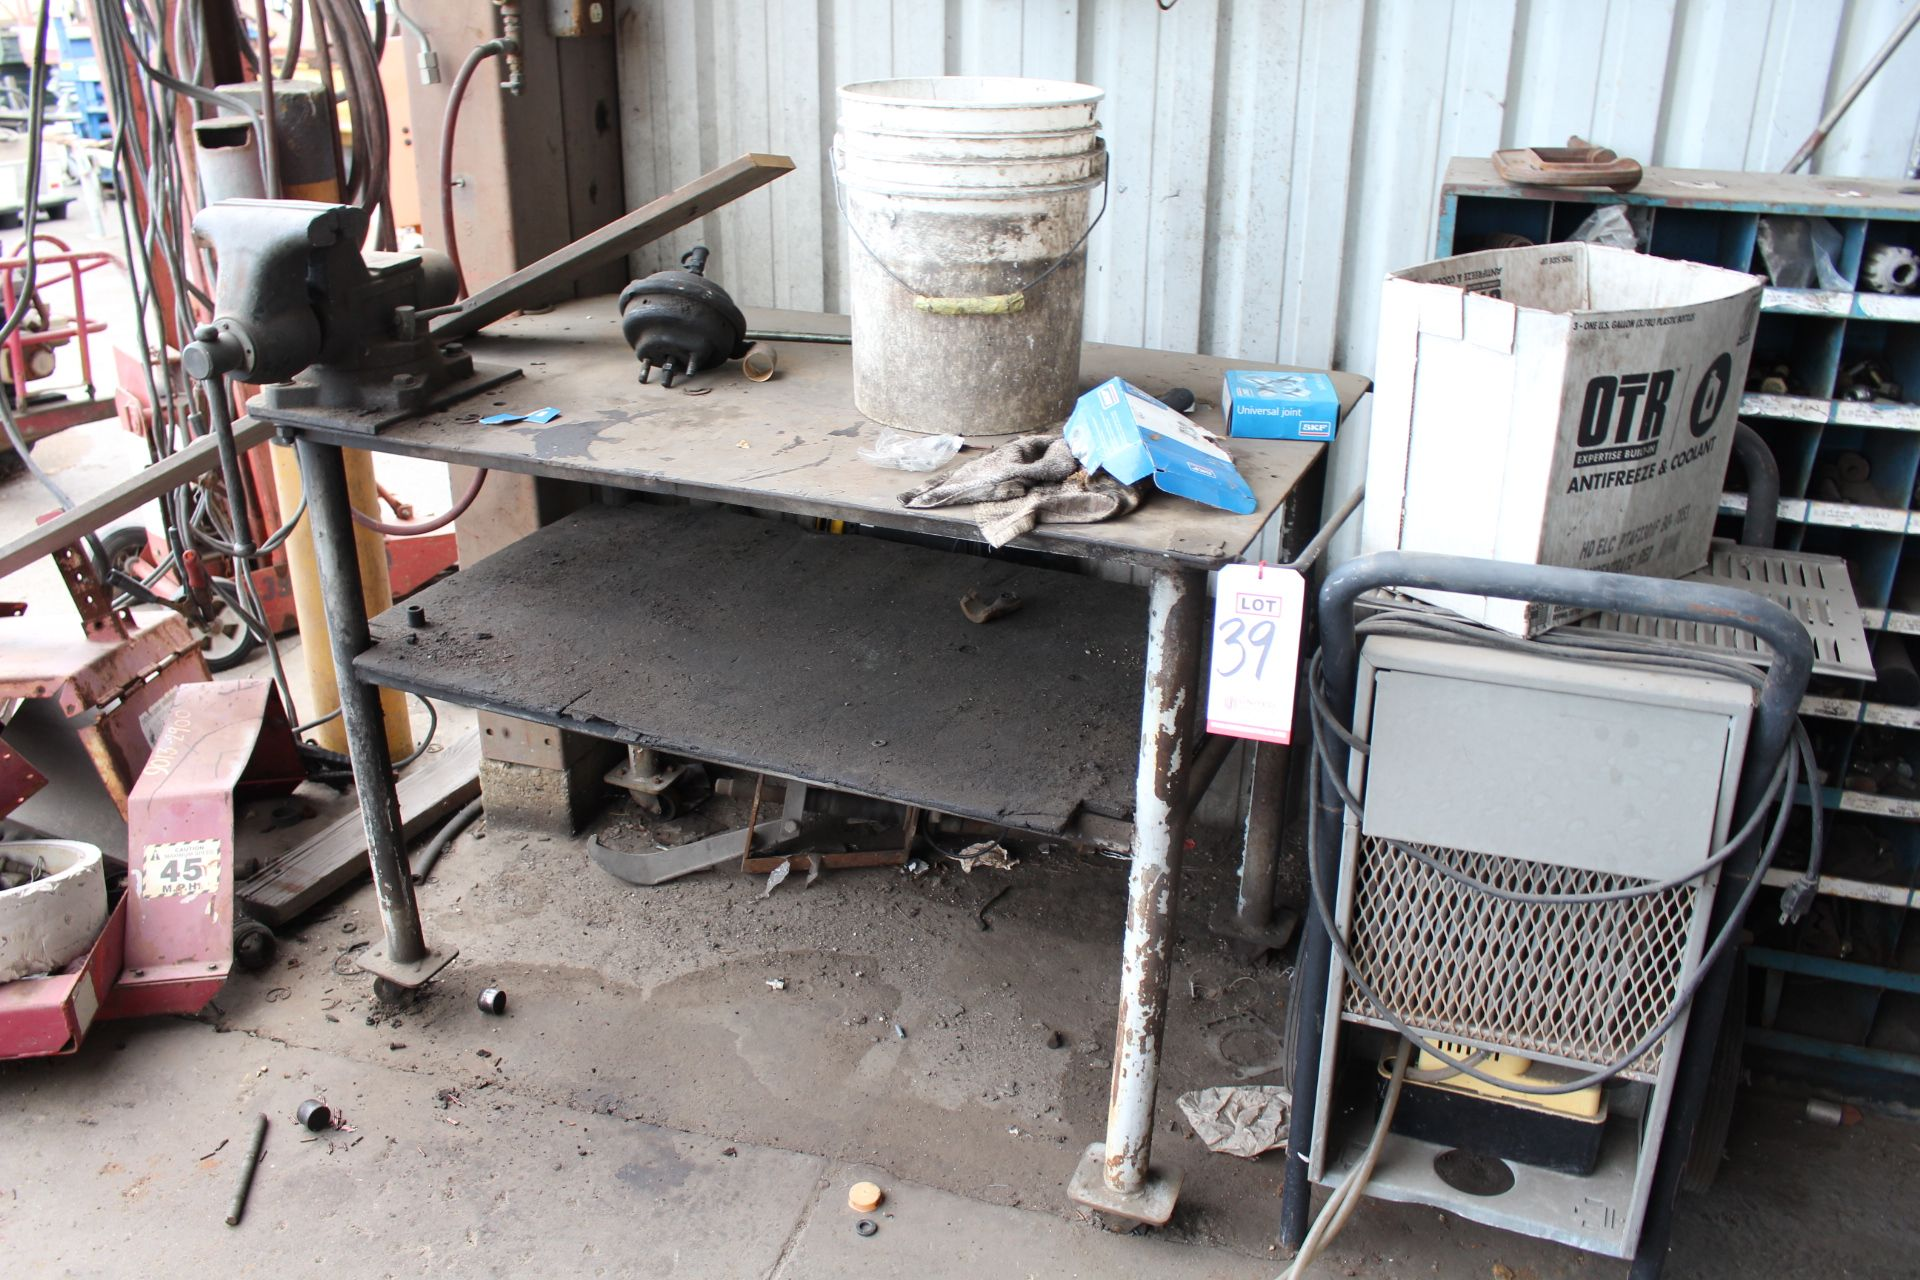 "Lot 39 - ***VOID*** LOT - WELDING TABLE, 48"" X 29"", W/ 6-1/2"" BENCH VISE, DEHUMIDIFIER, OUT OF SERVICE"